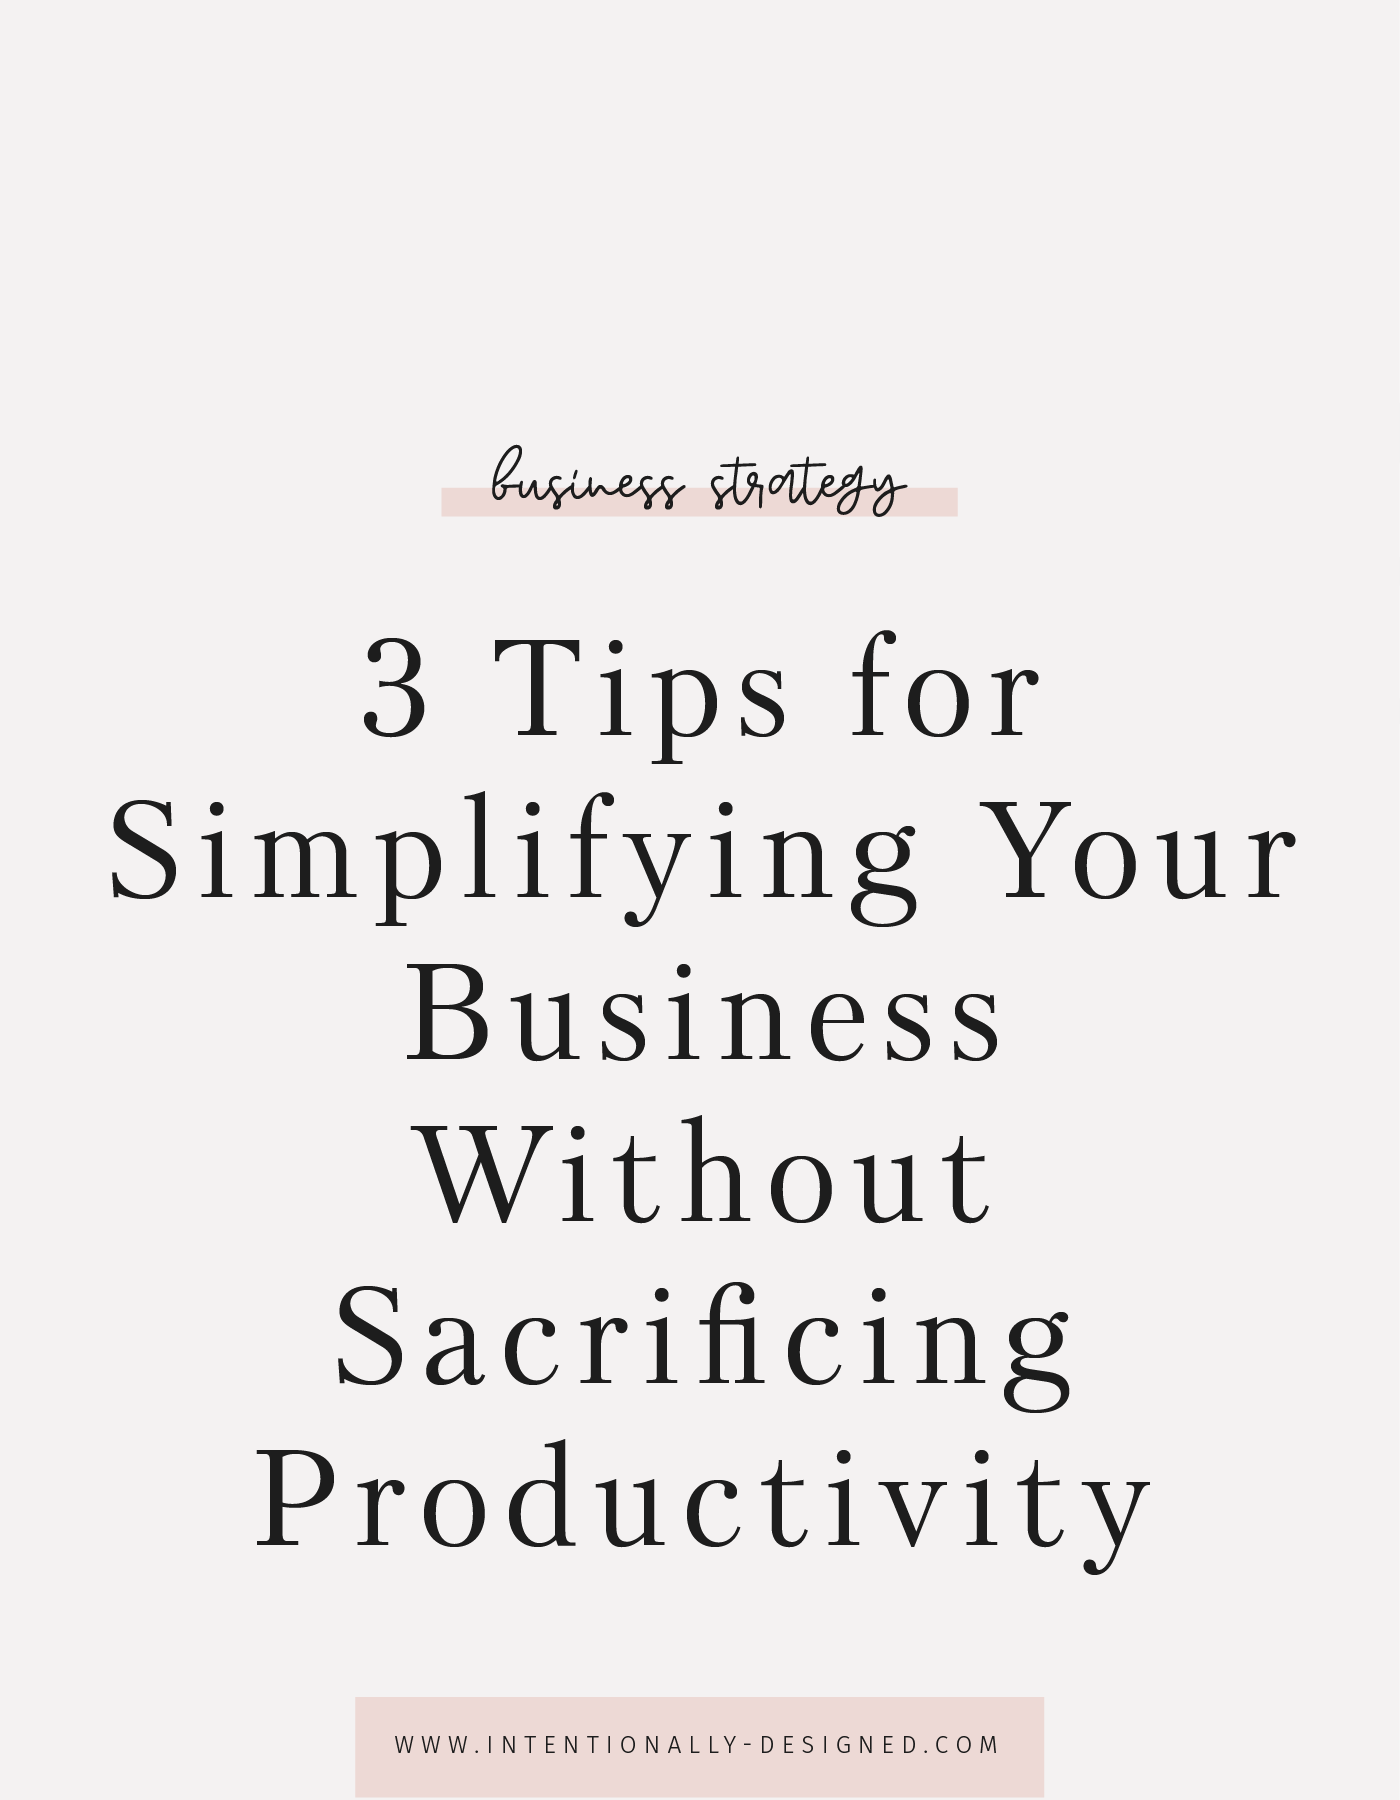 3 Tips for Simplifying Your Business Without Sacrificing Productivity